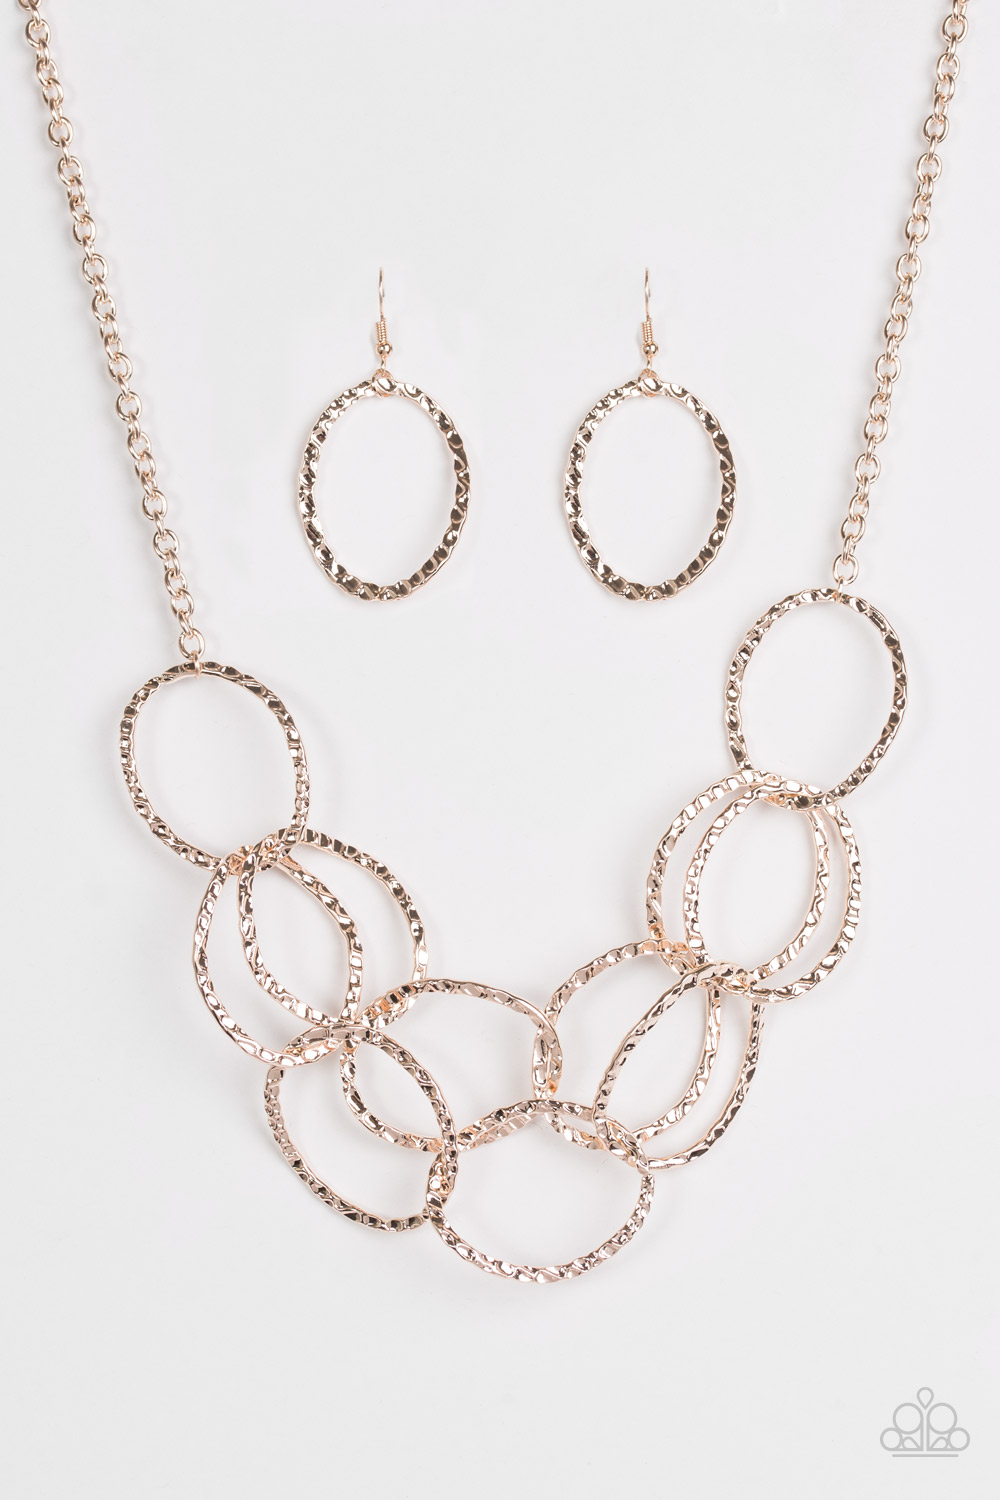 Paparazzi Accessories Circus Royale Rose Gold